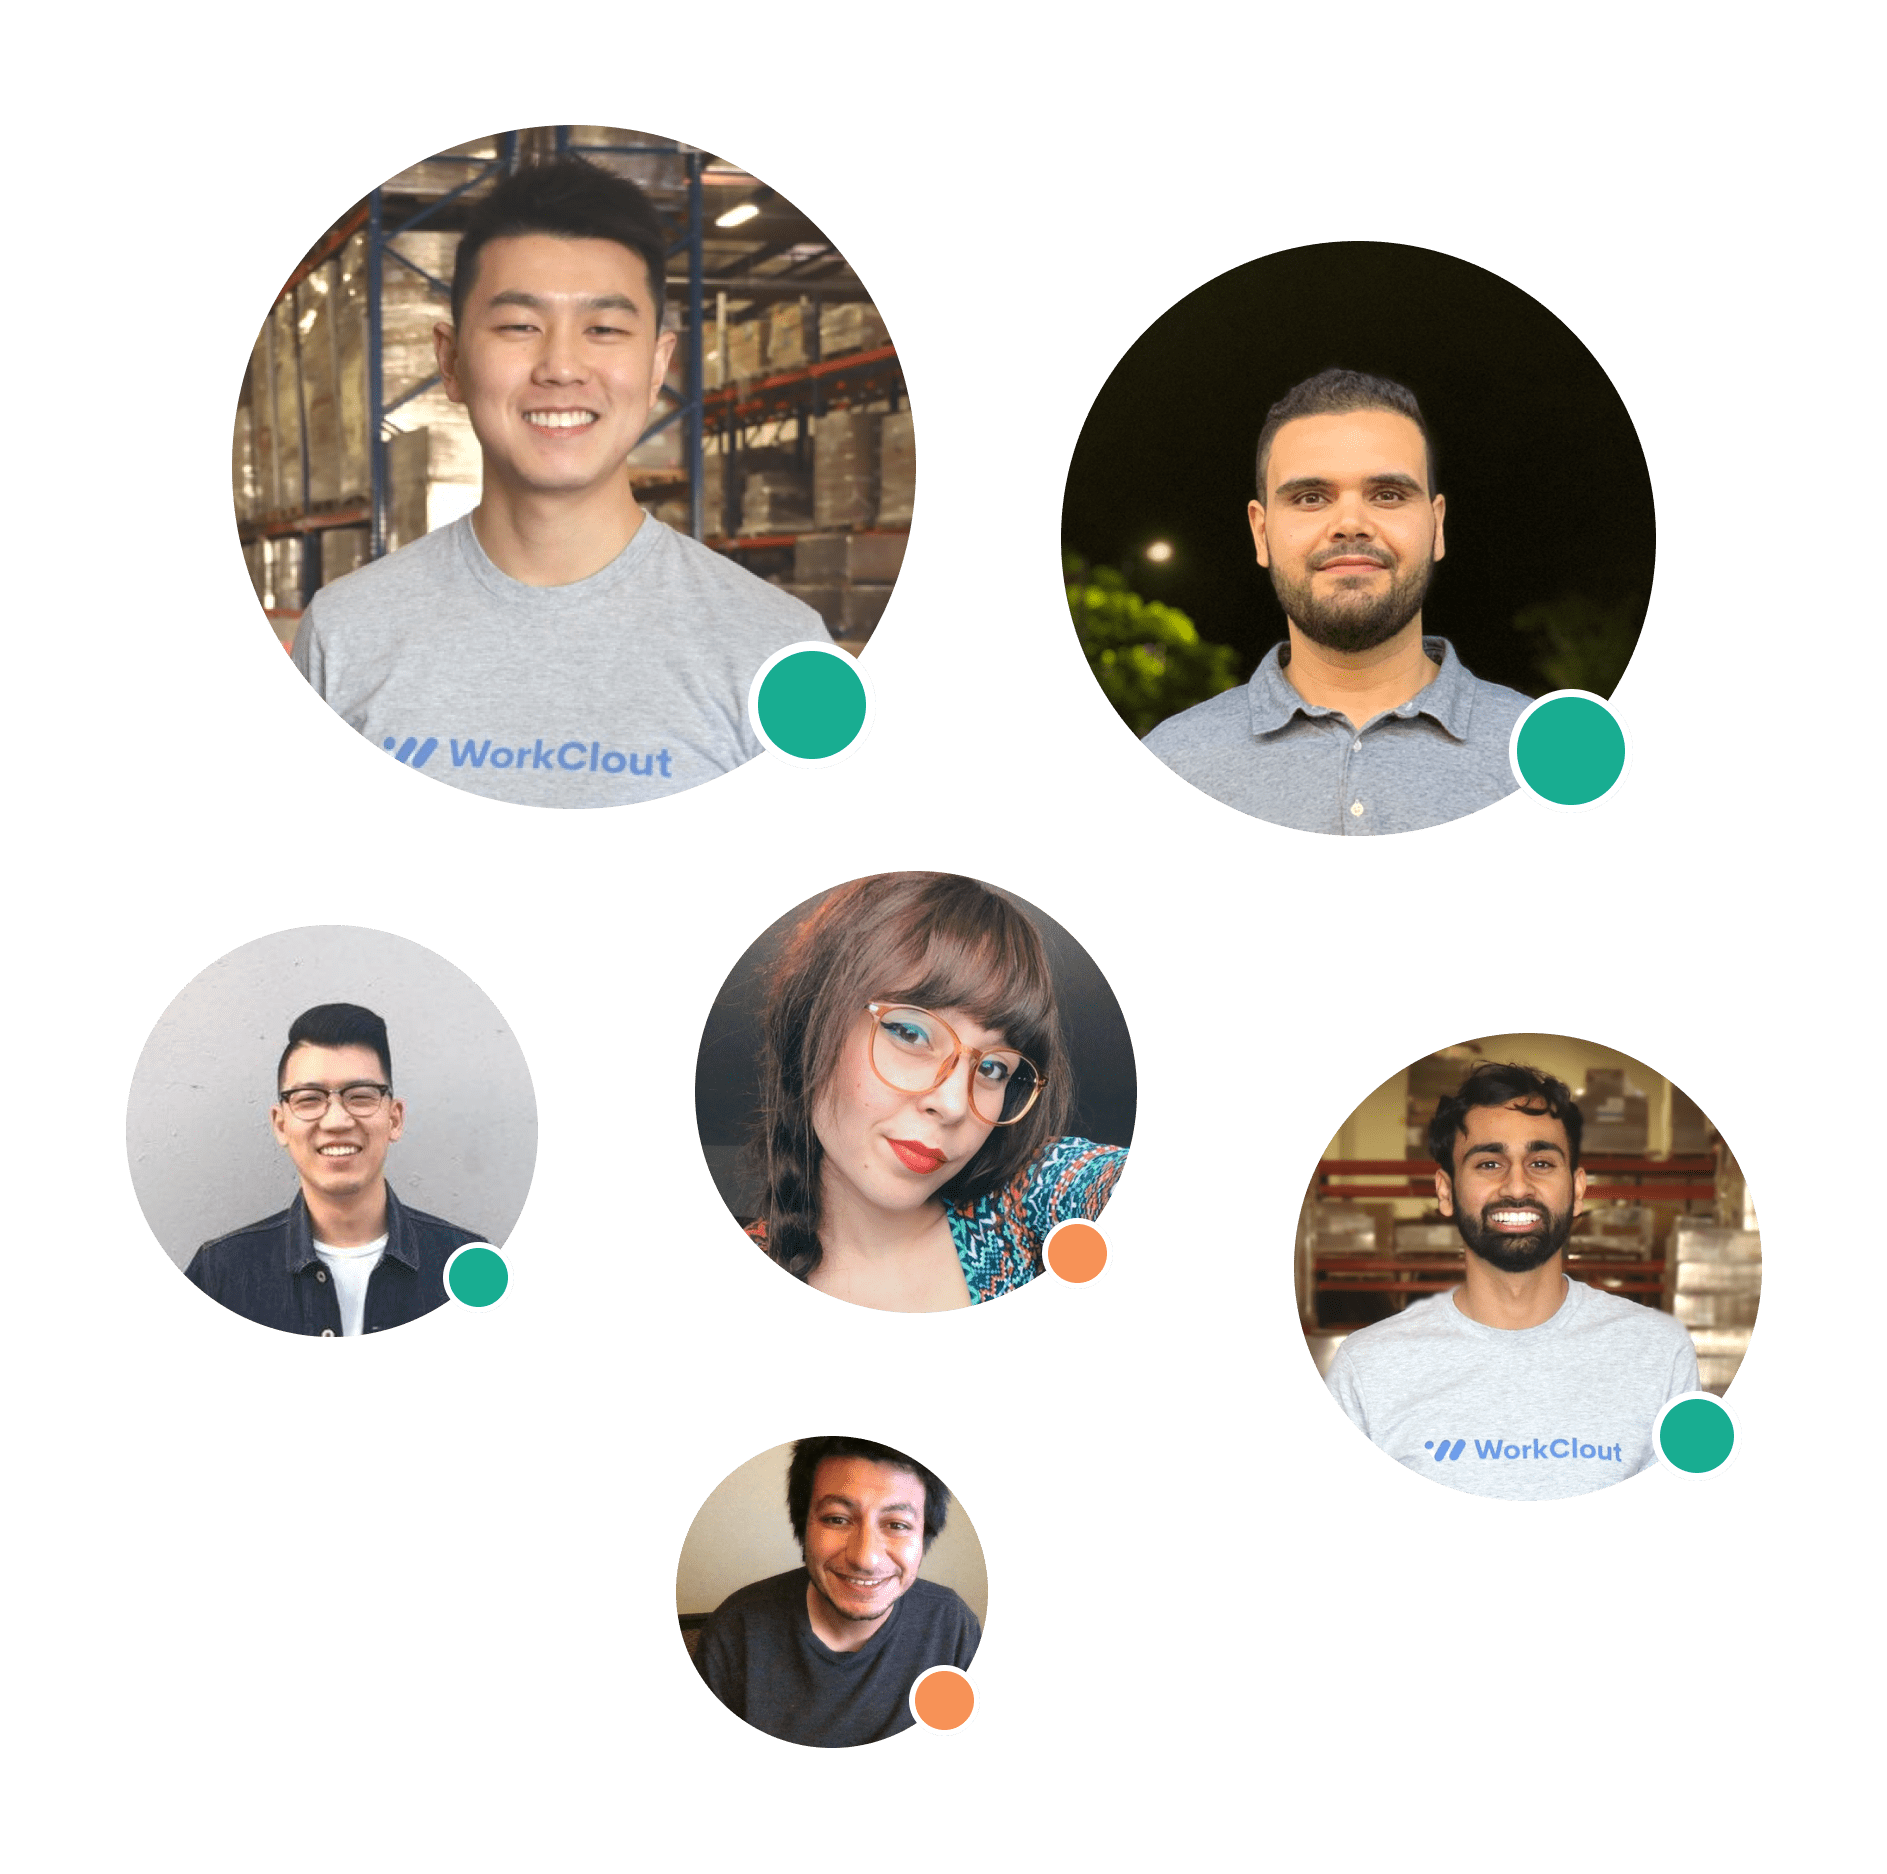 WorkClout team provides best-in-class support